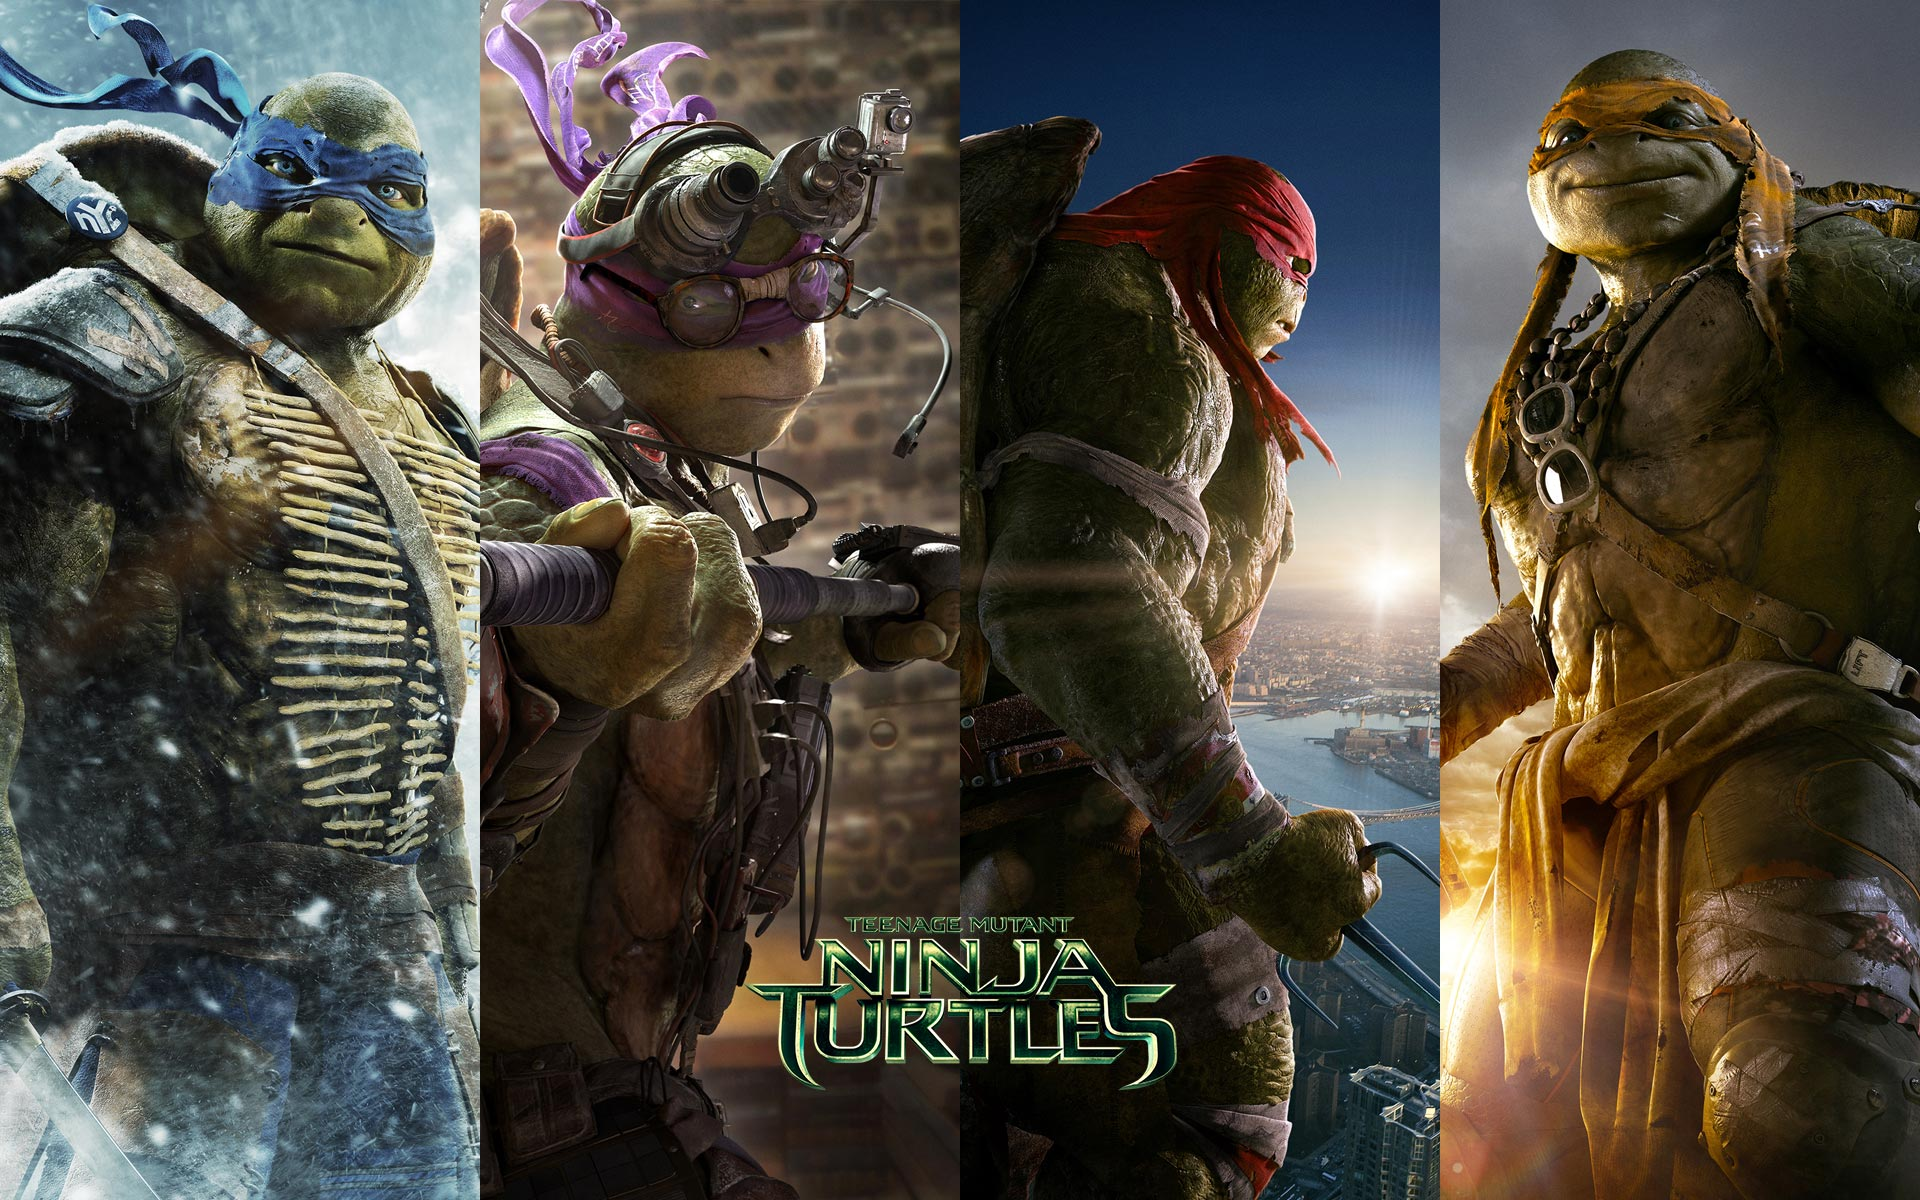 https://i1.wp.com/www.designbolts.com/wp-content/uploads/2014/06/TMNT-2014-Desktop-Wallpaper-HD1.jpg